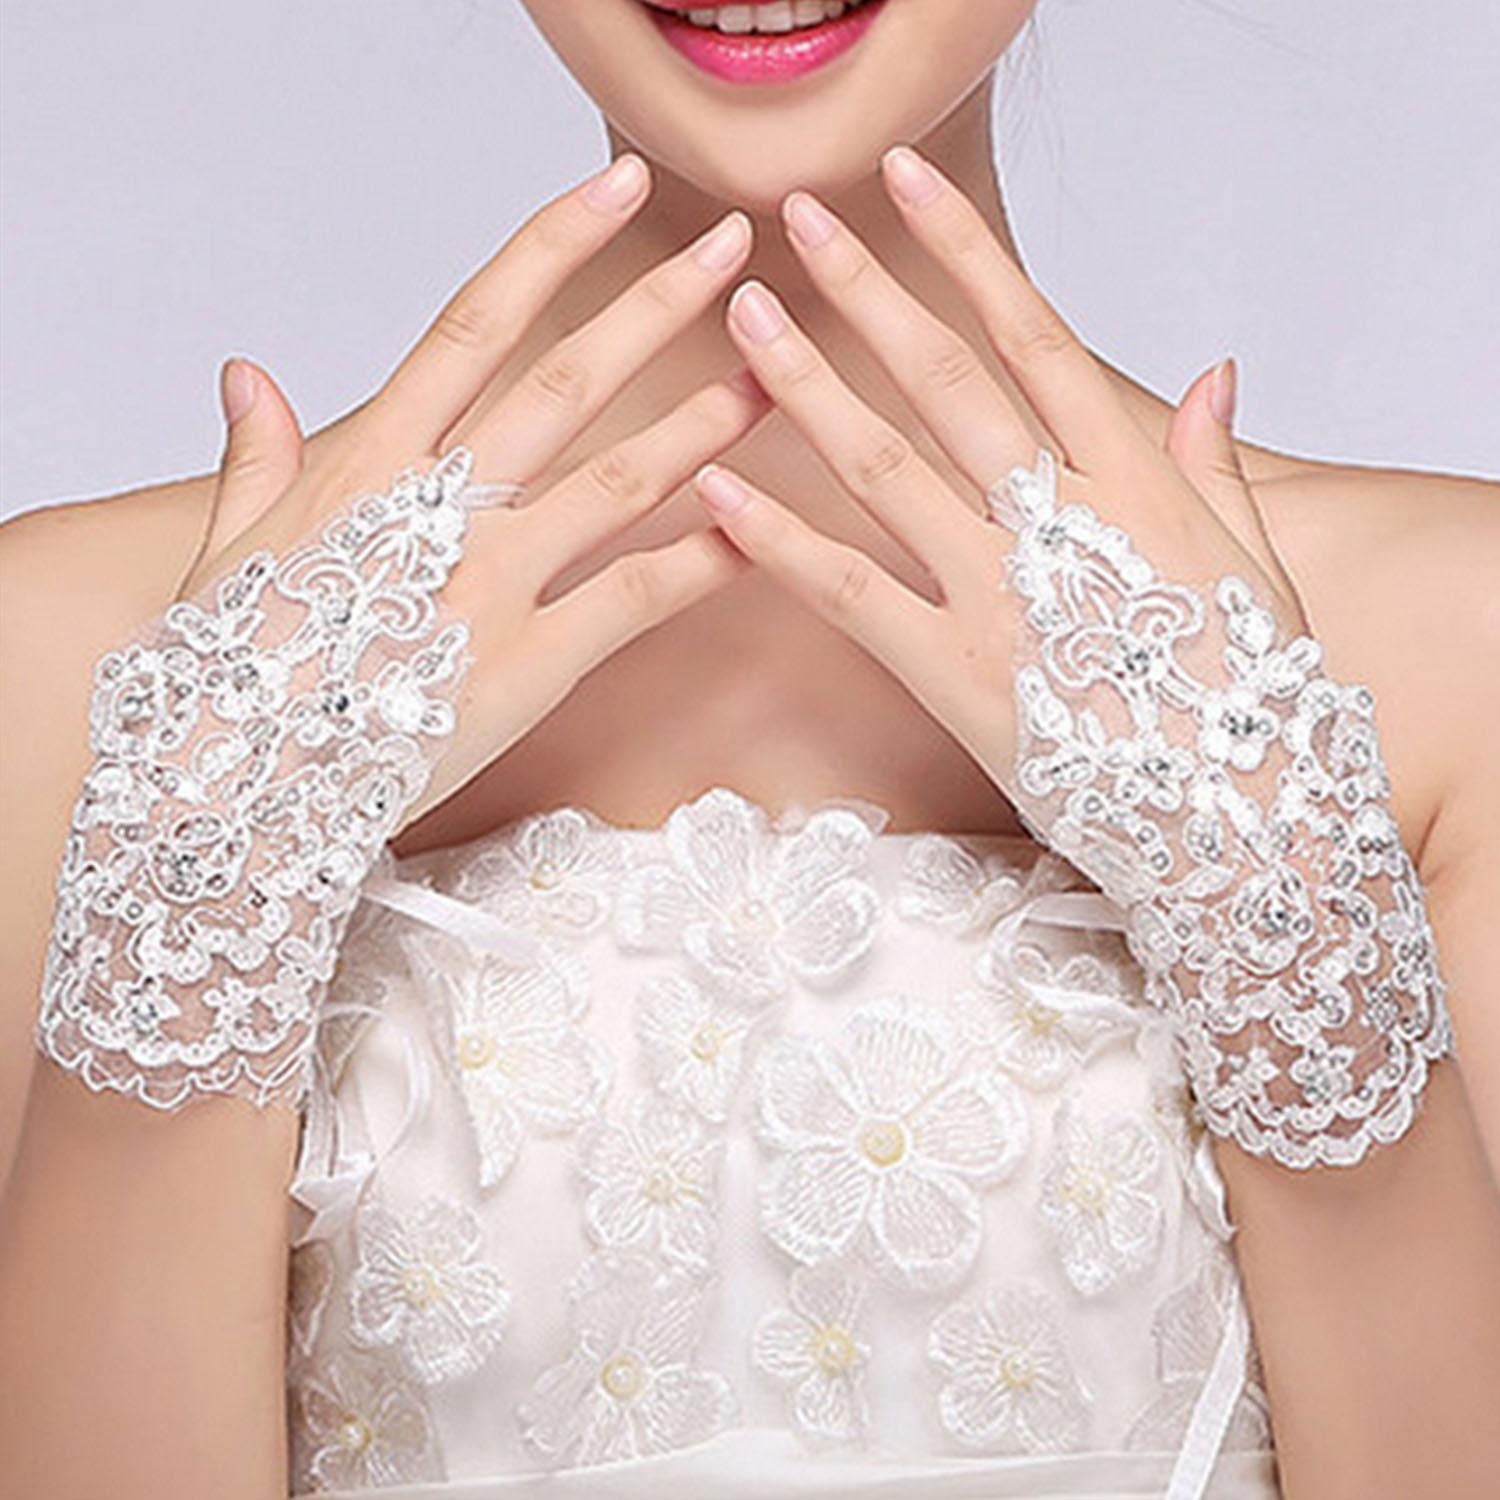 Women Bridal Lace Fingerless Dress Gloves With Shiny Beading Detail For Wedding Party Prom Performance By Duha.